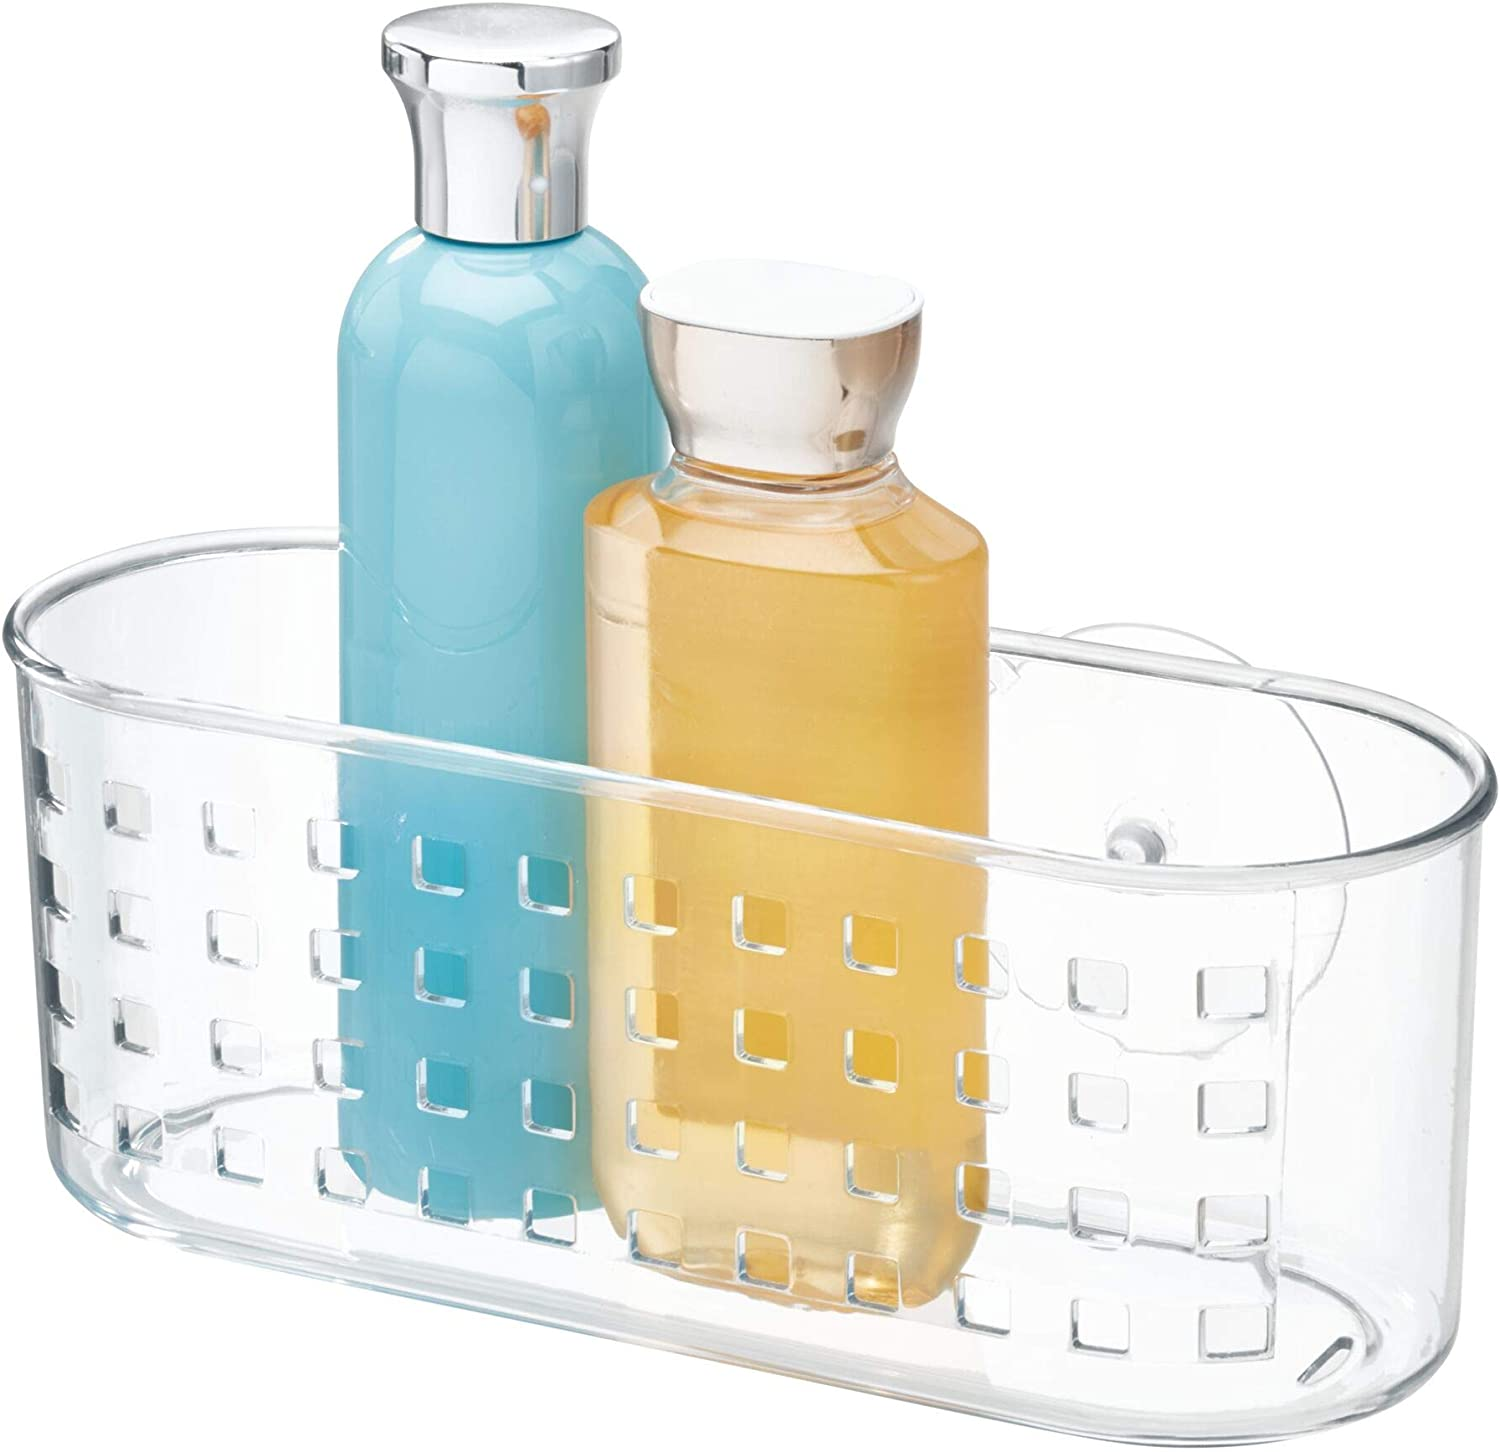 iDesign Plastic Suction Shower Caddy Basket for Shampoo Conditioner Soap in x